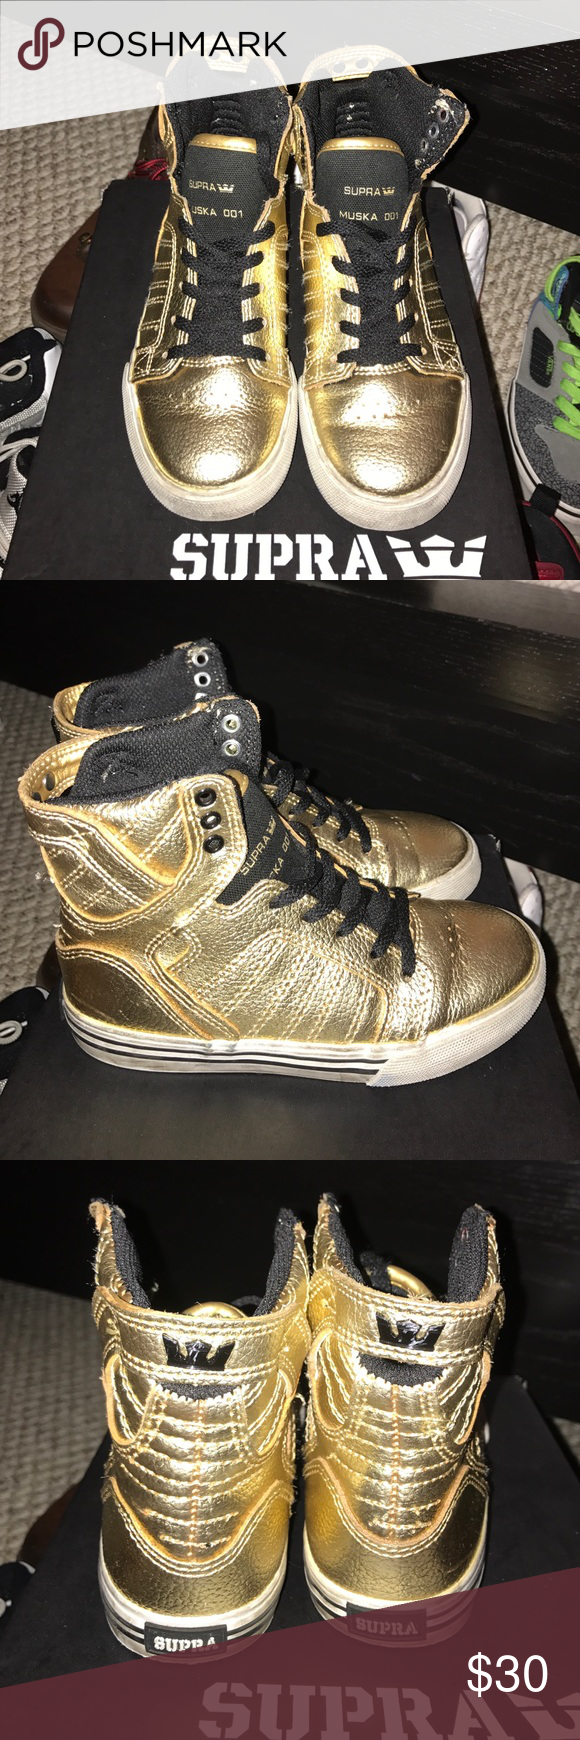 Supra muska high tops Wore a few times scuffs around the white part of the shoes. No peeling the gold is good.! Ends of shoe strings could be replaced. Other then the scuffs marks shoes are good. With box any questions please ask. Supra Shoes Sneakers